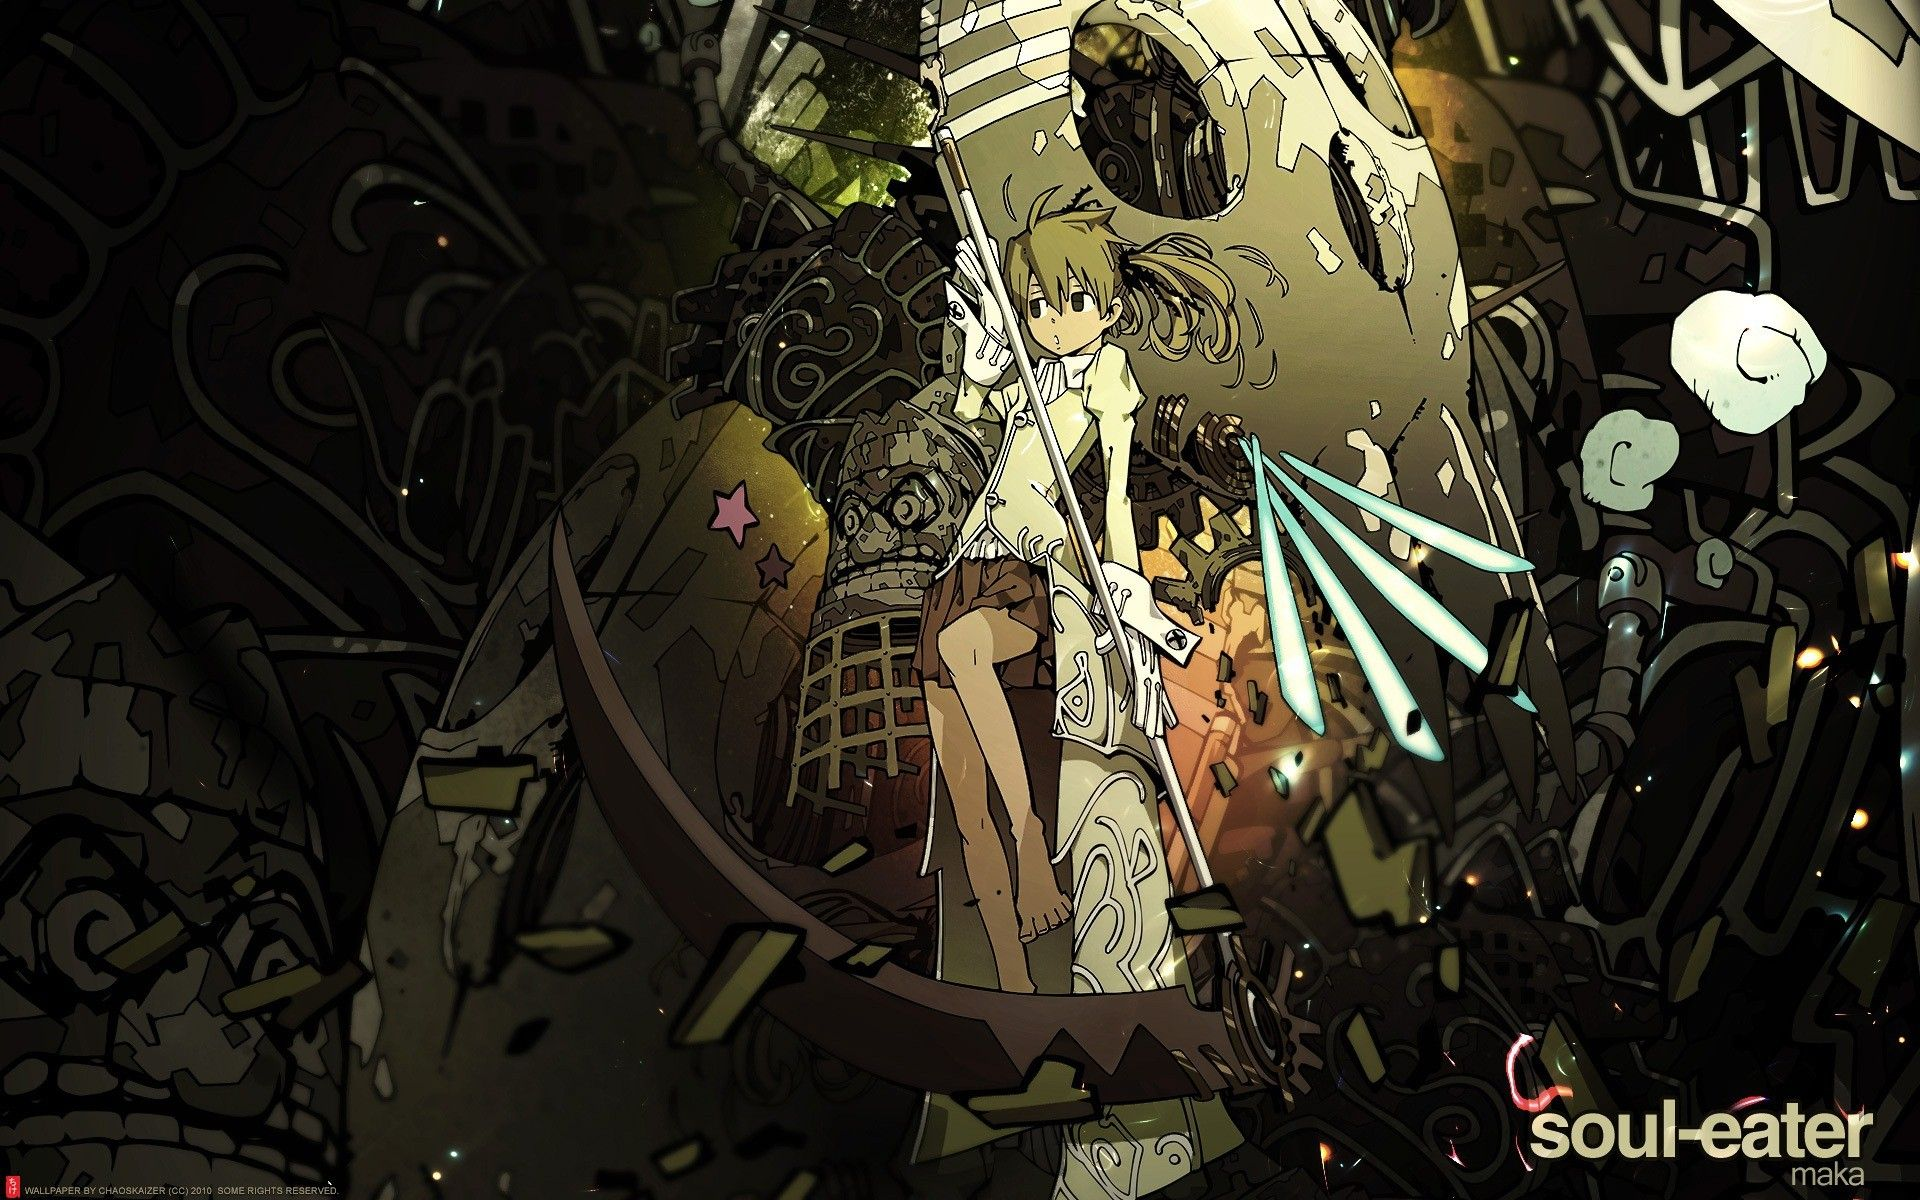 Soul Eater High Quality Wallpaper HD Resolution Anime